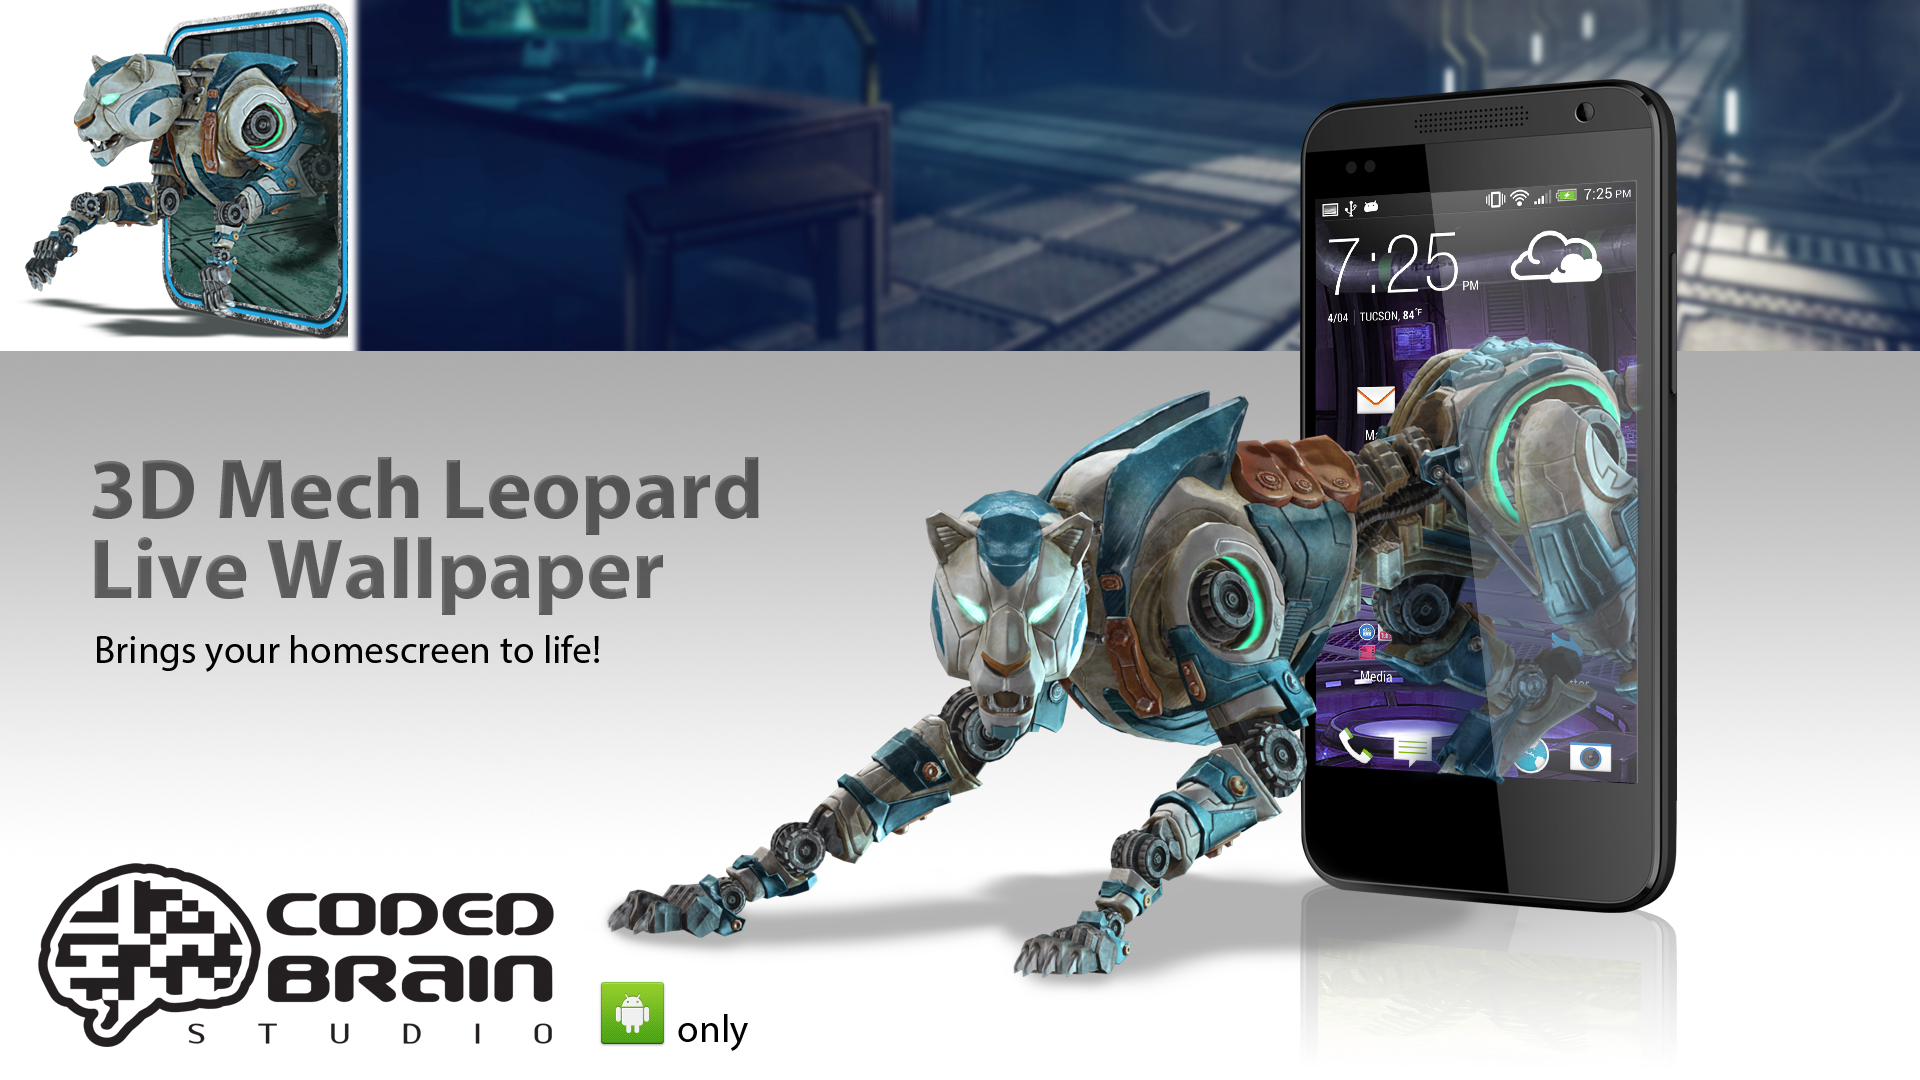 Mech Leopard Live Wallpaper